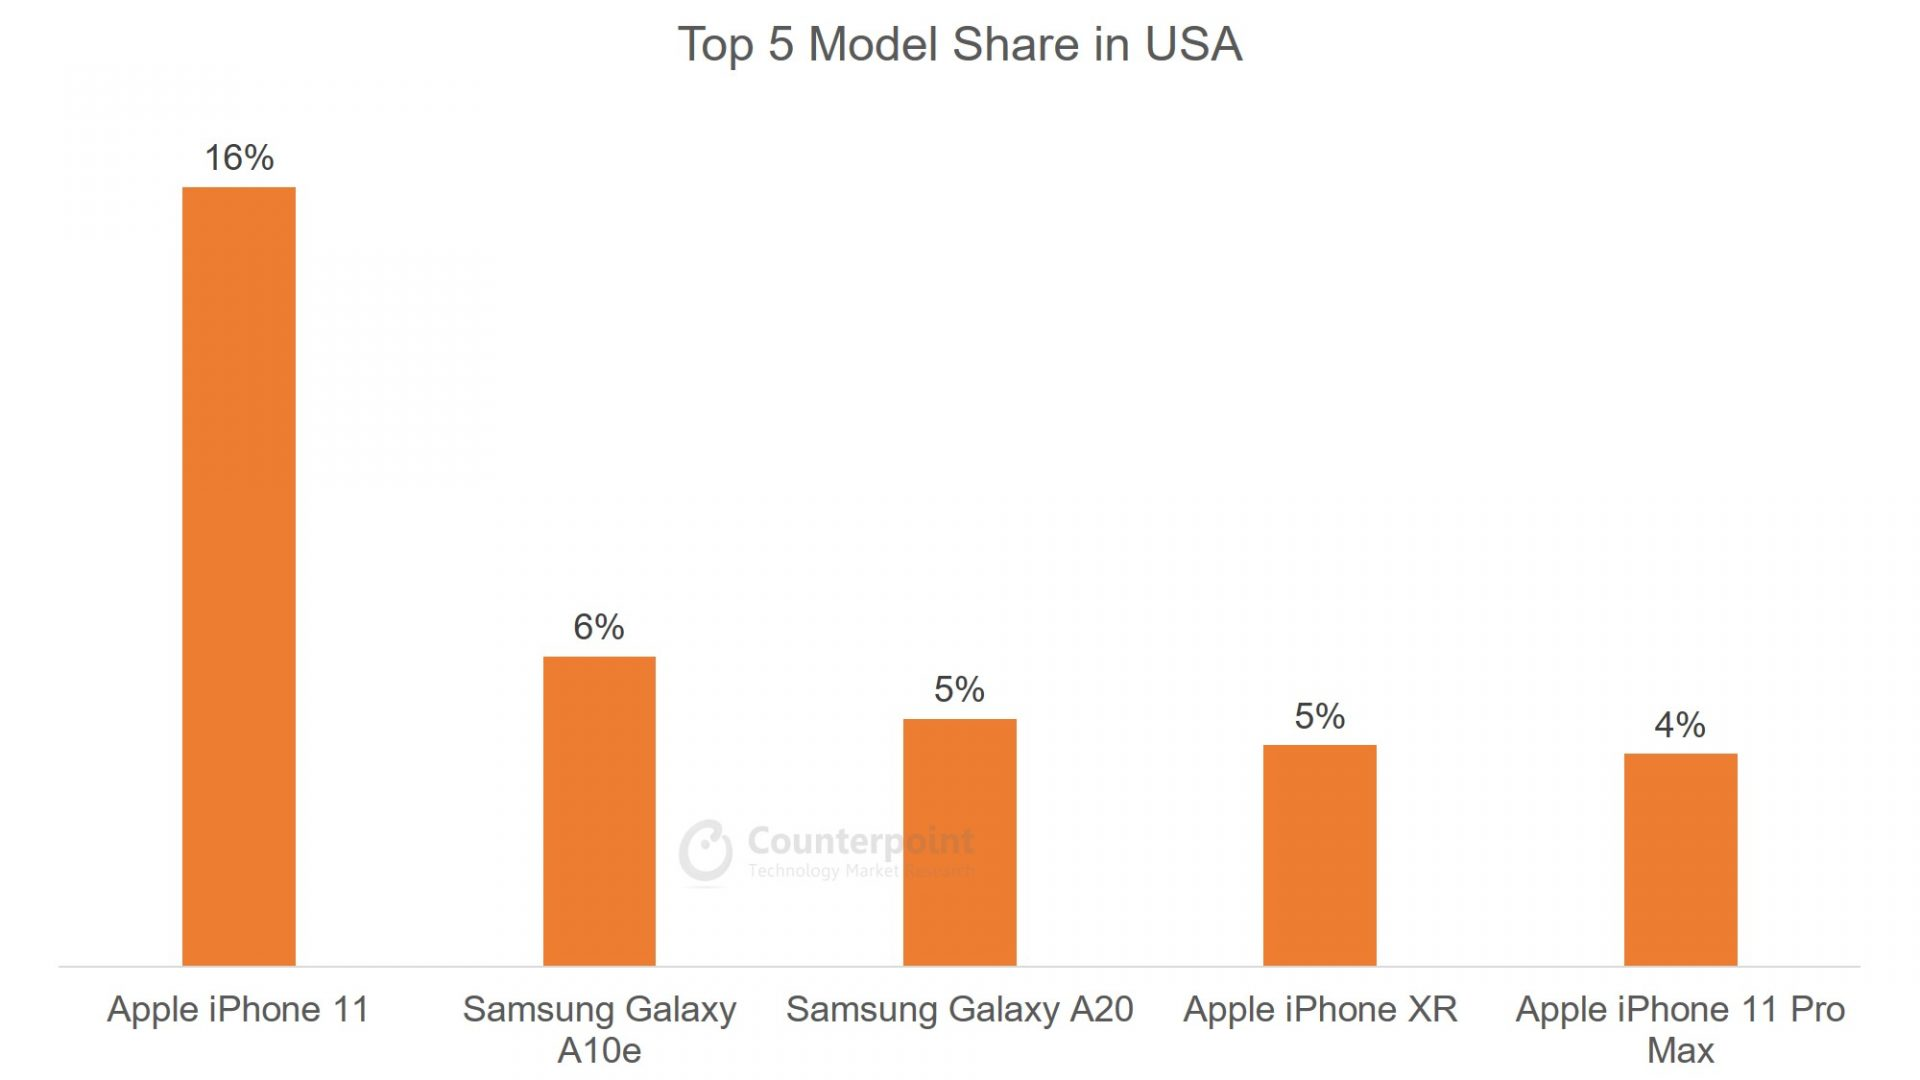 Counterpoint: (Apr 2020) Top 5 Smartphone Model Share in USA